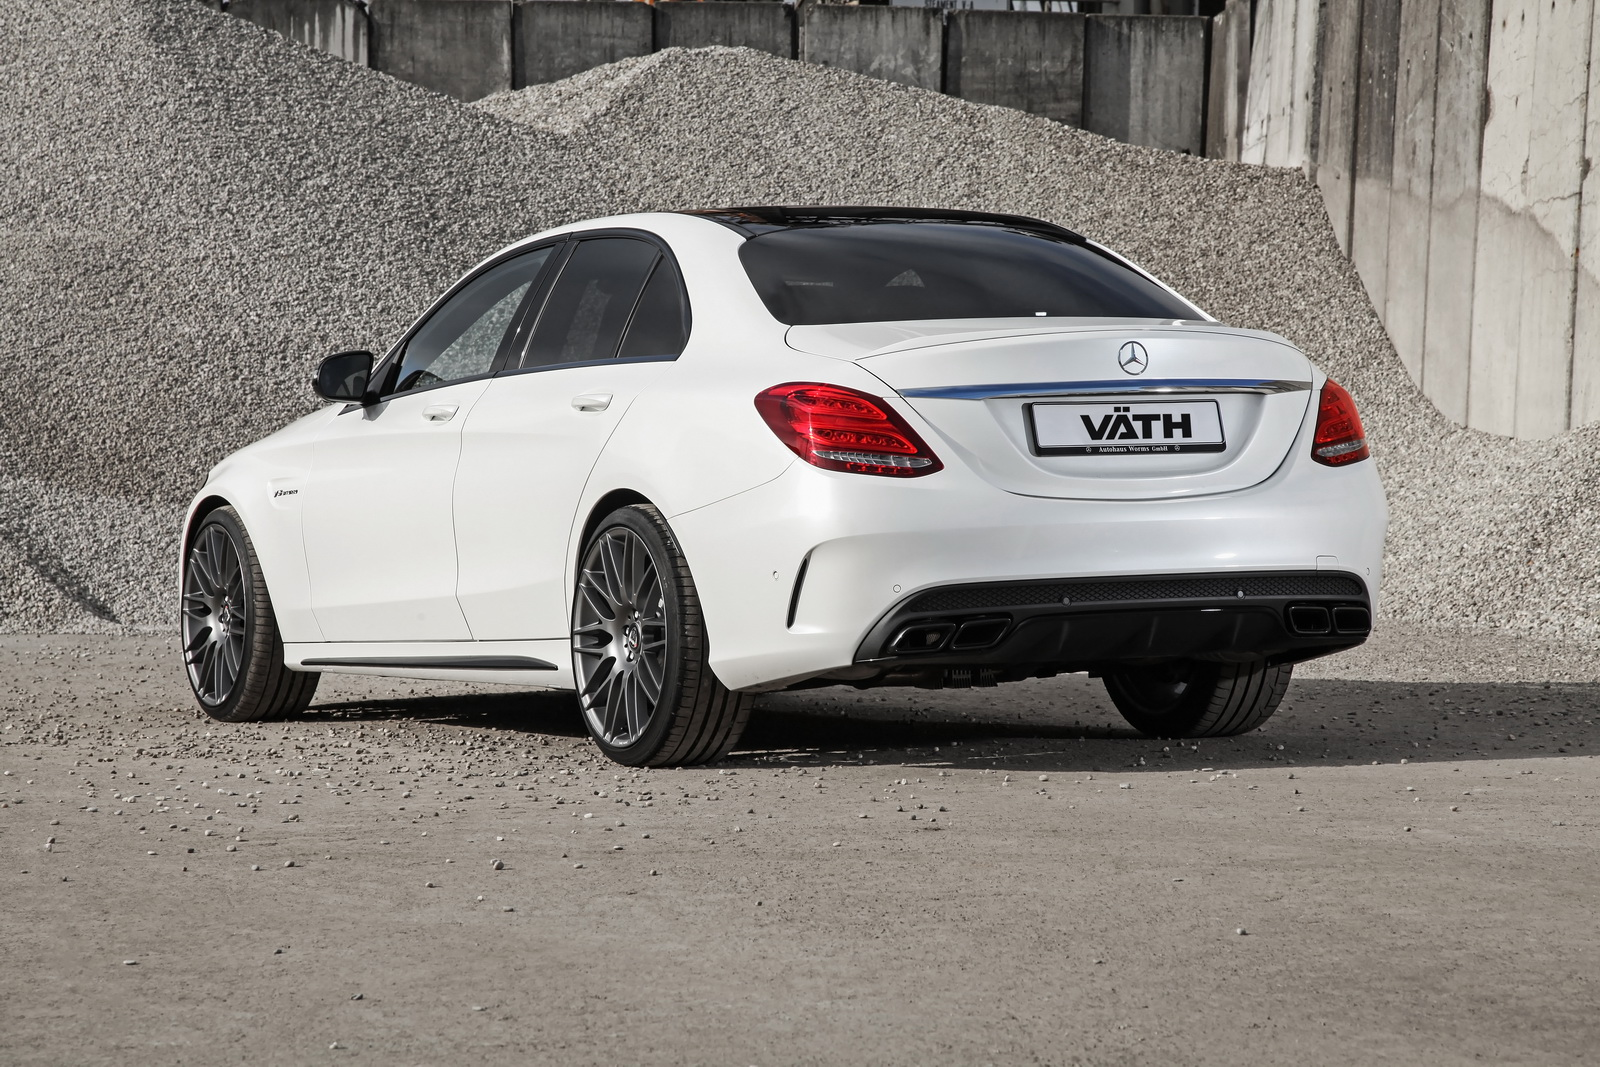 mercedes tuning vath gives mercedes amg c63 s a boost to. Black Bedroom Furniture Sets. Home Design Ideas